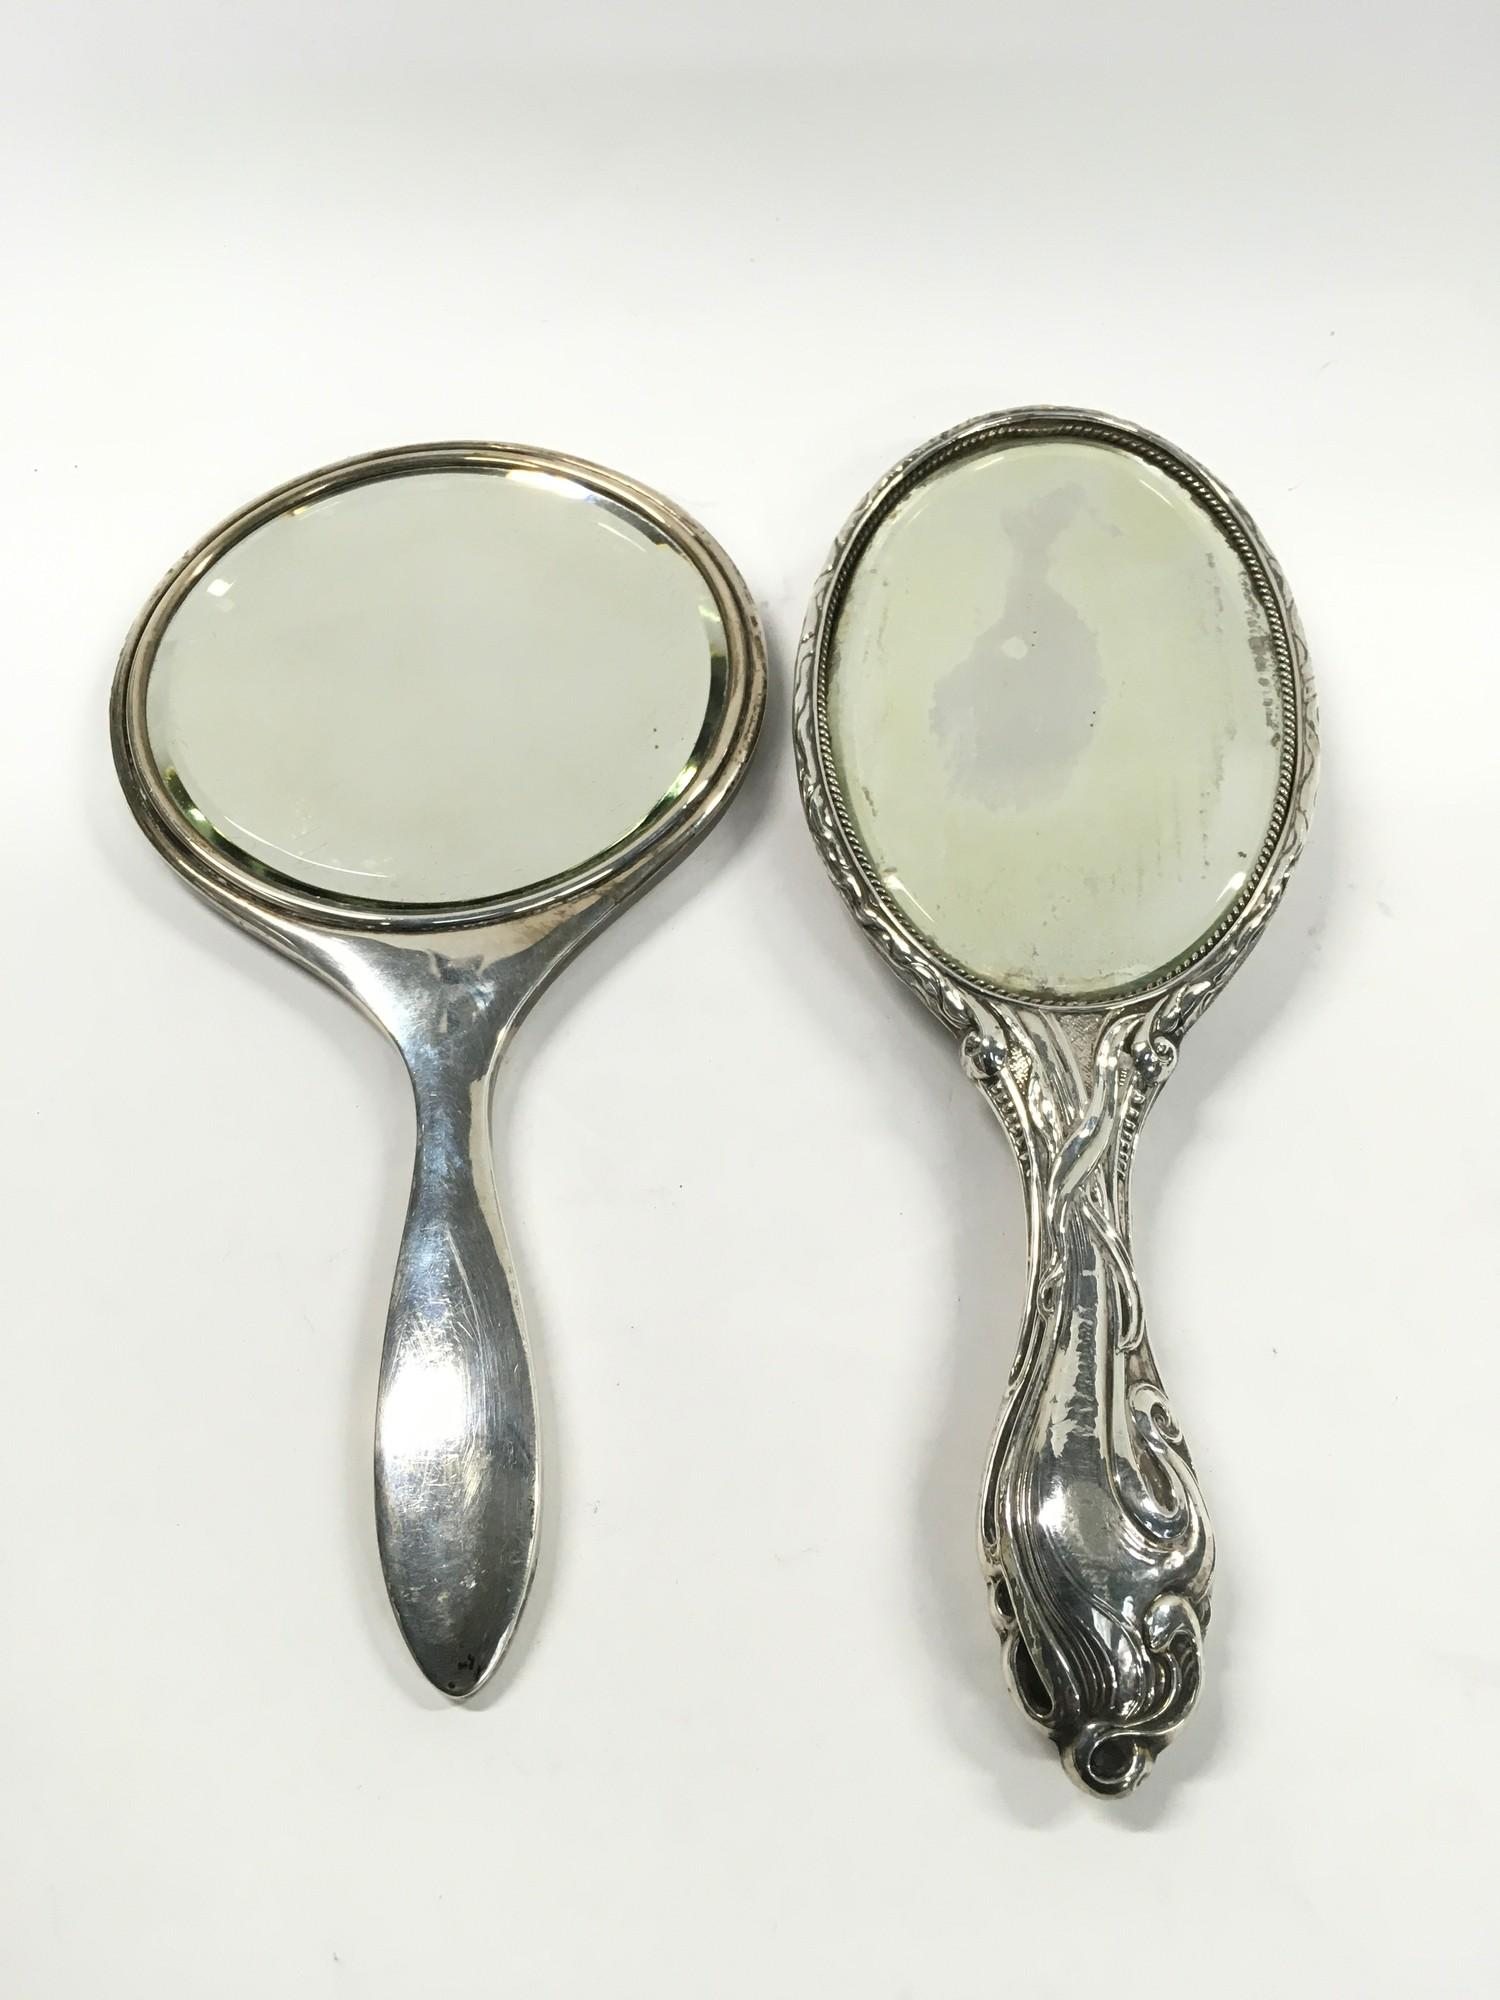 2 x Fully Hallmarked Silver Hand Mirrors, one Art Deco, the other Art Nouveau.